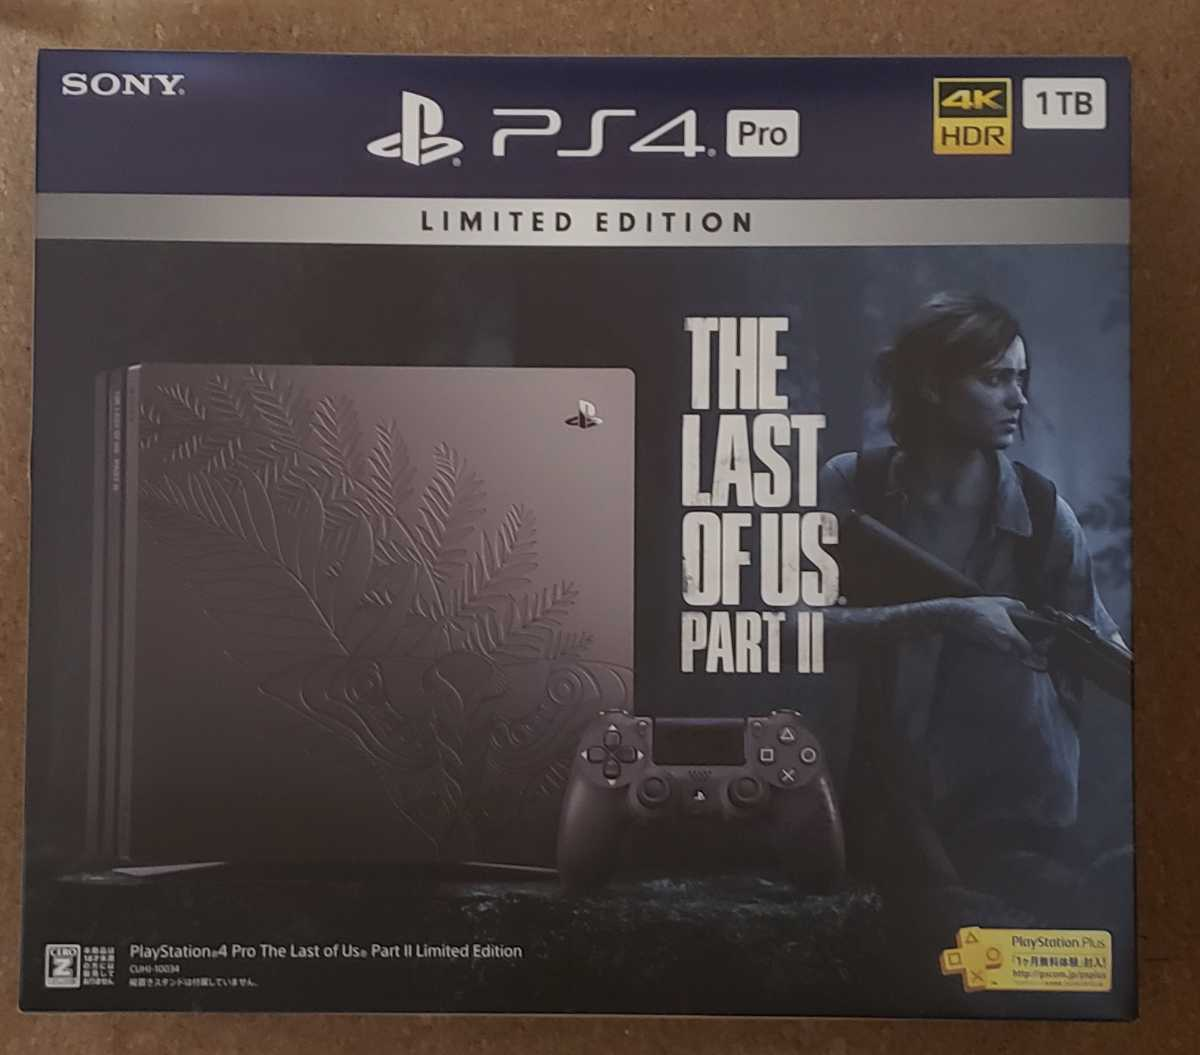 PlayStation 4 Pro The Last of Us Part II Limited Edition【Amazon.co.jp特典】The Last of Us Part II オリジナル ギターピック(付)